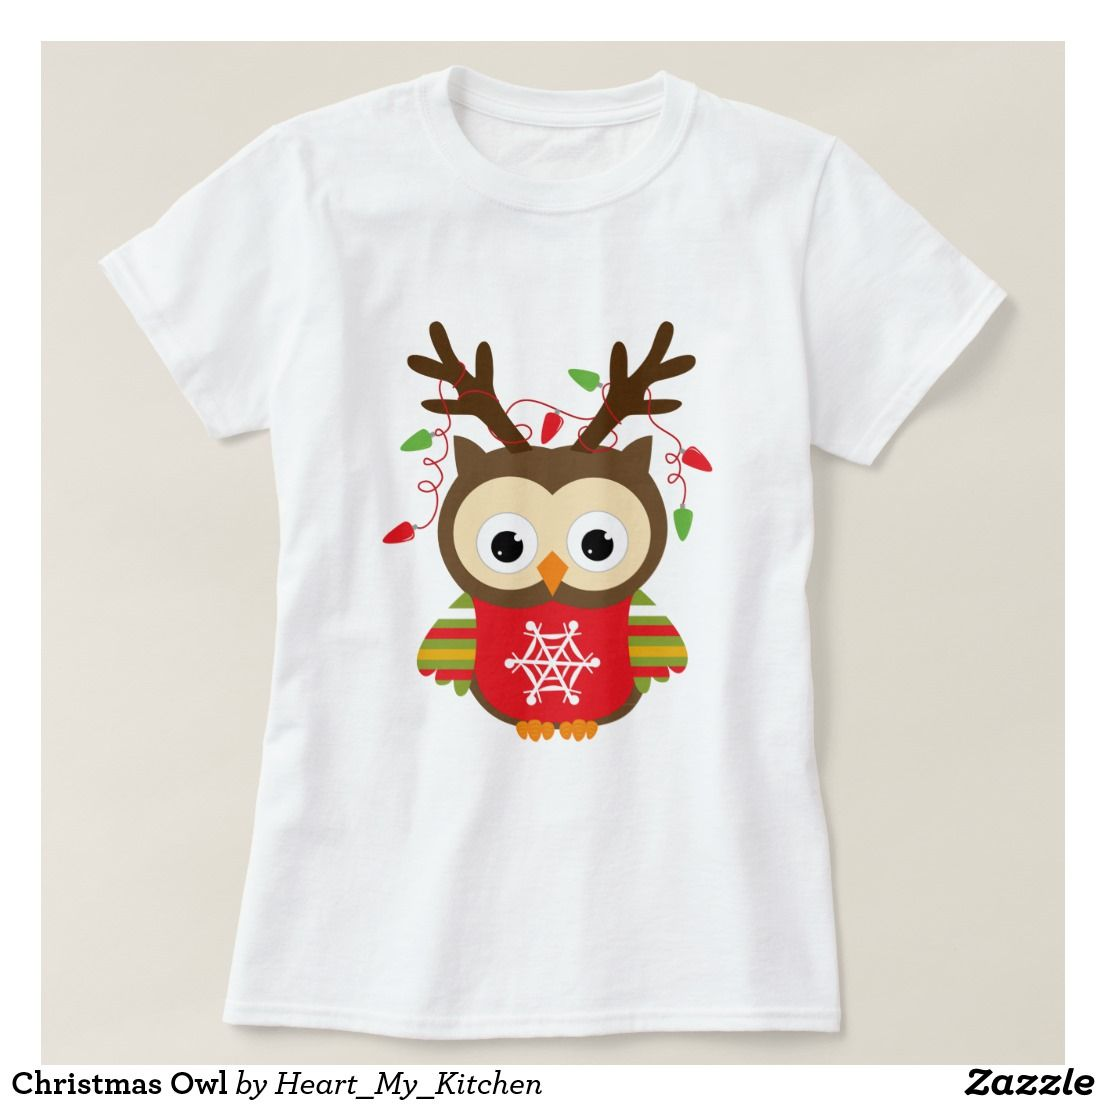 Christmas Owl T-Shirt | Christmas T Shirts | Pinterest | Shirts ...